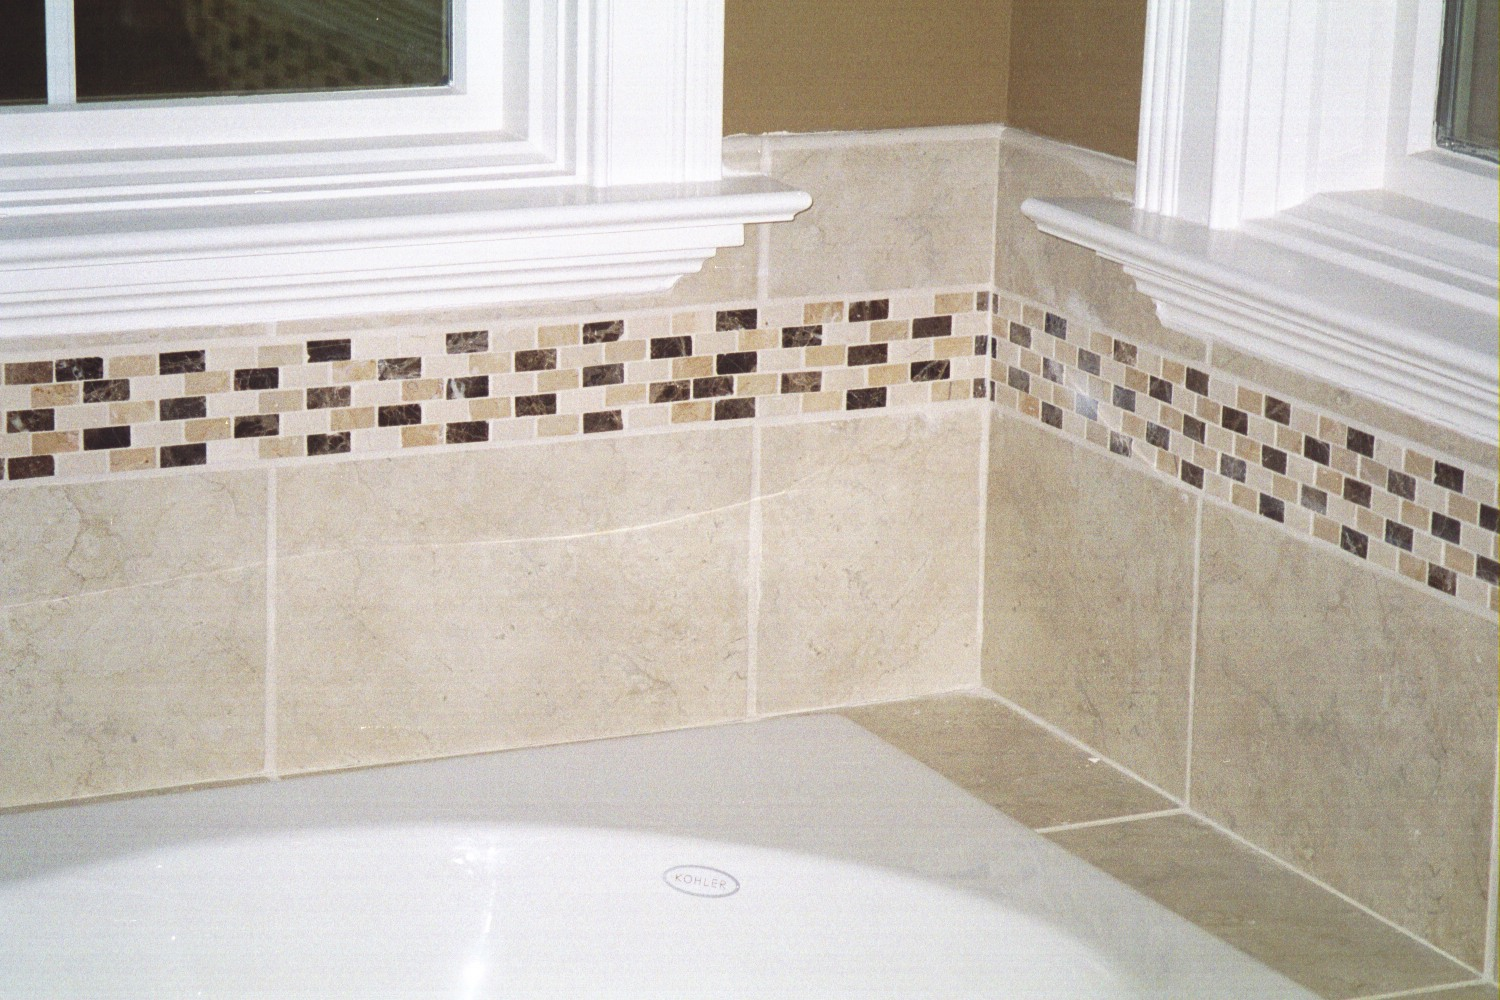 Bathroom wall tile natural stone border marble and travertine BELK Tile